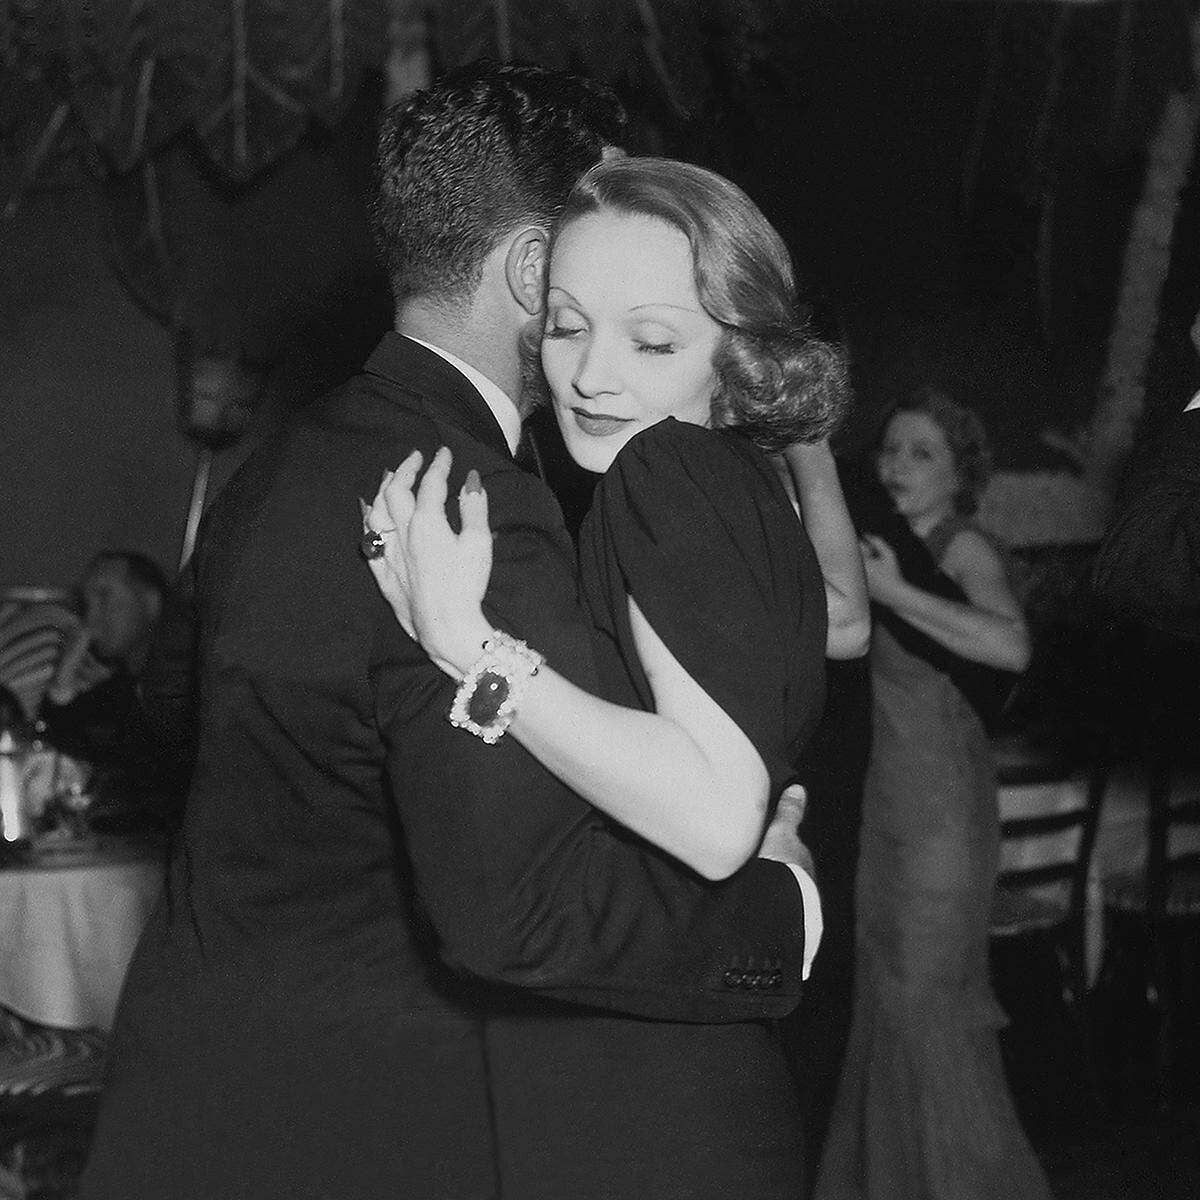 Zerbe photograph of actress Marlene Dietrich at El Morocco.